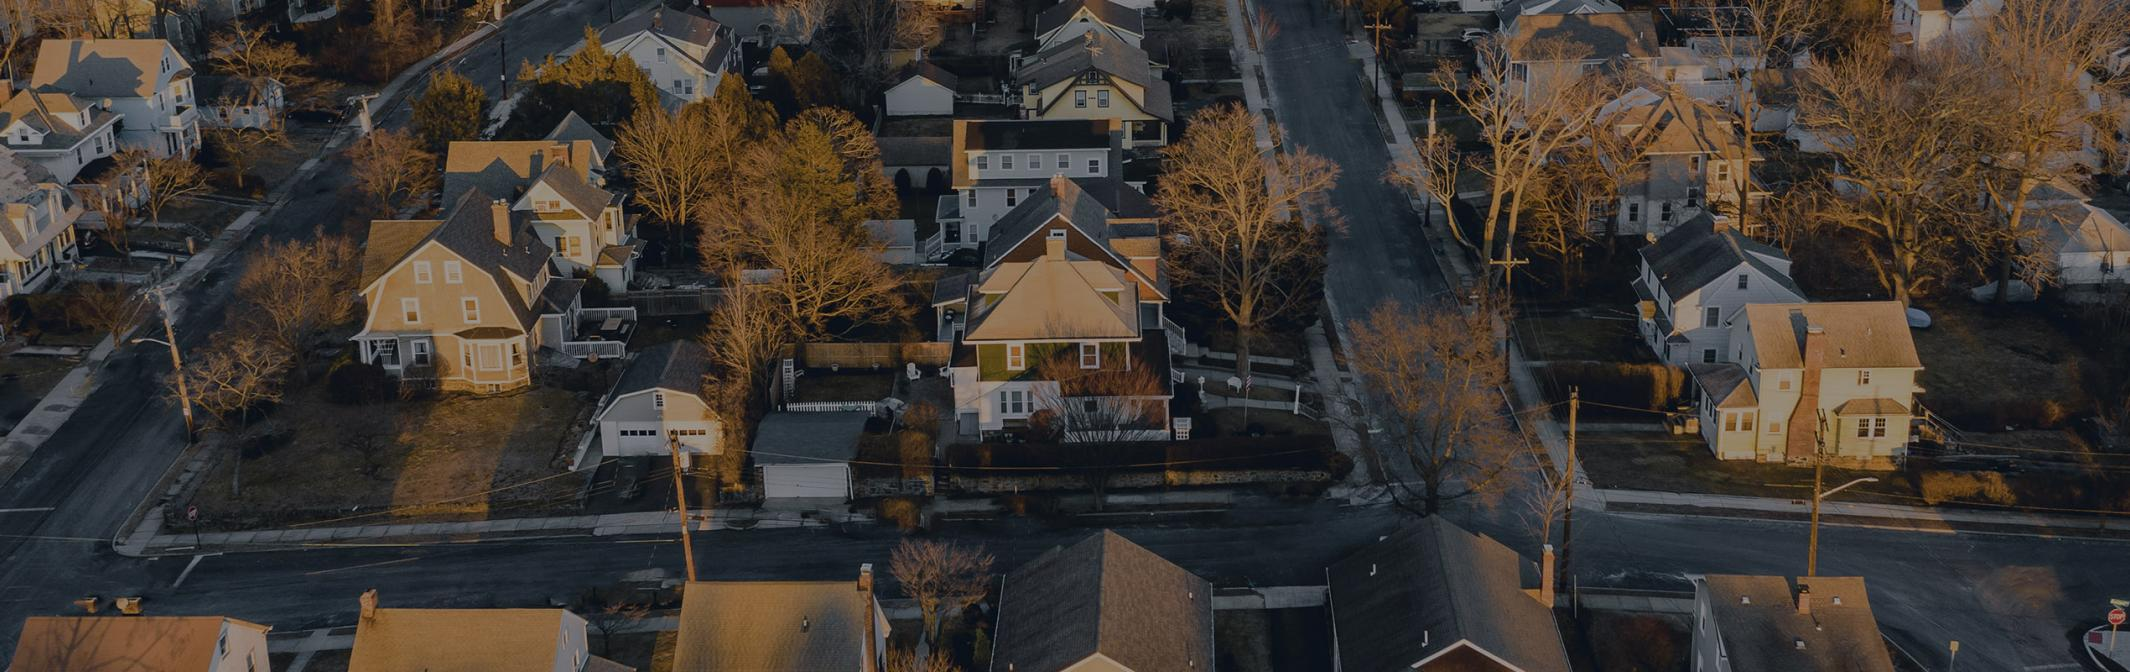 New England homes from above